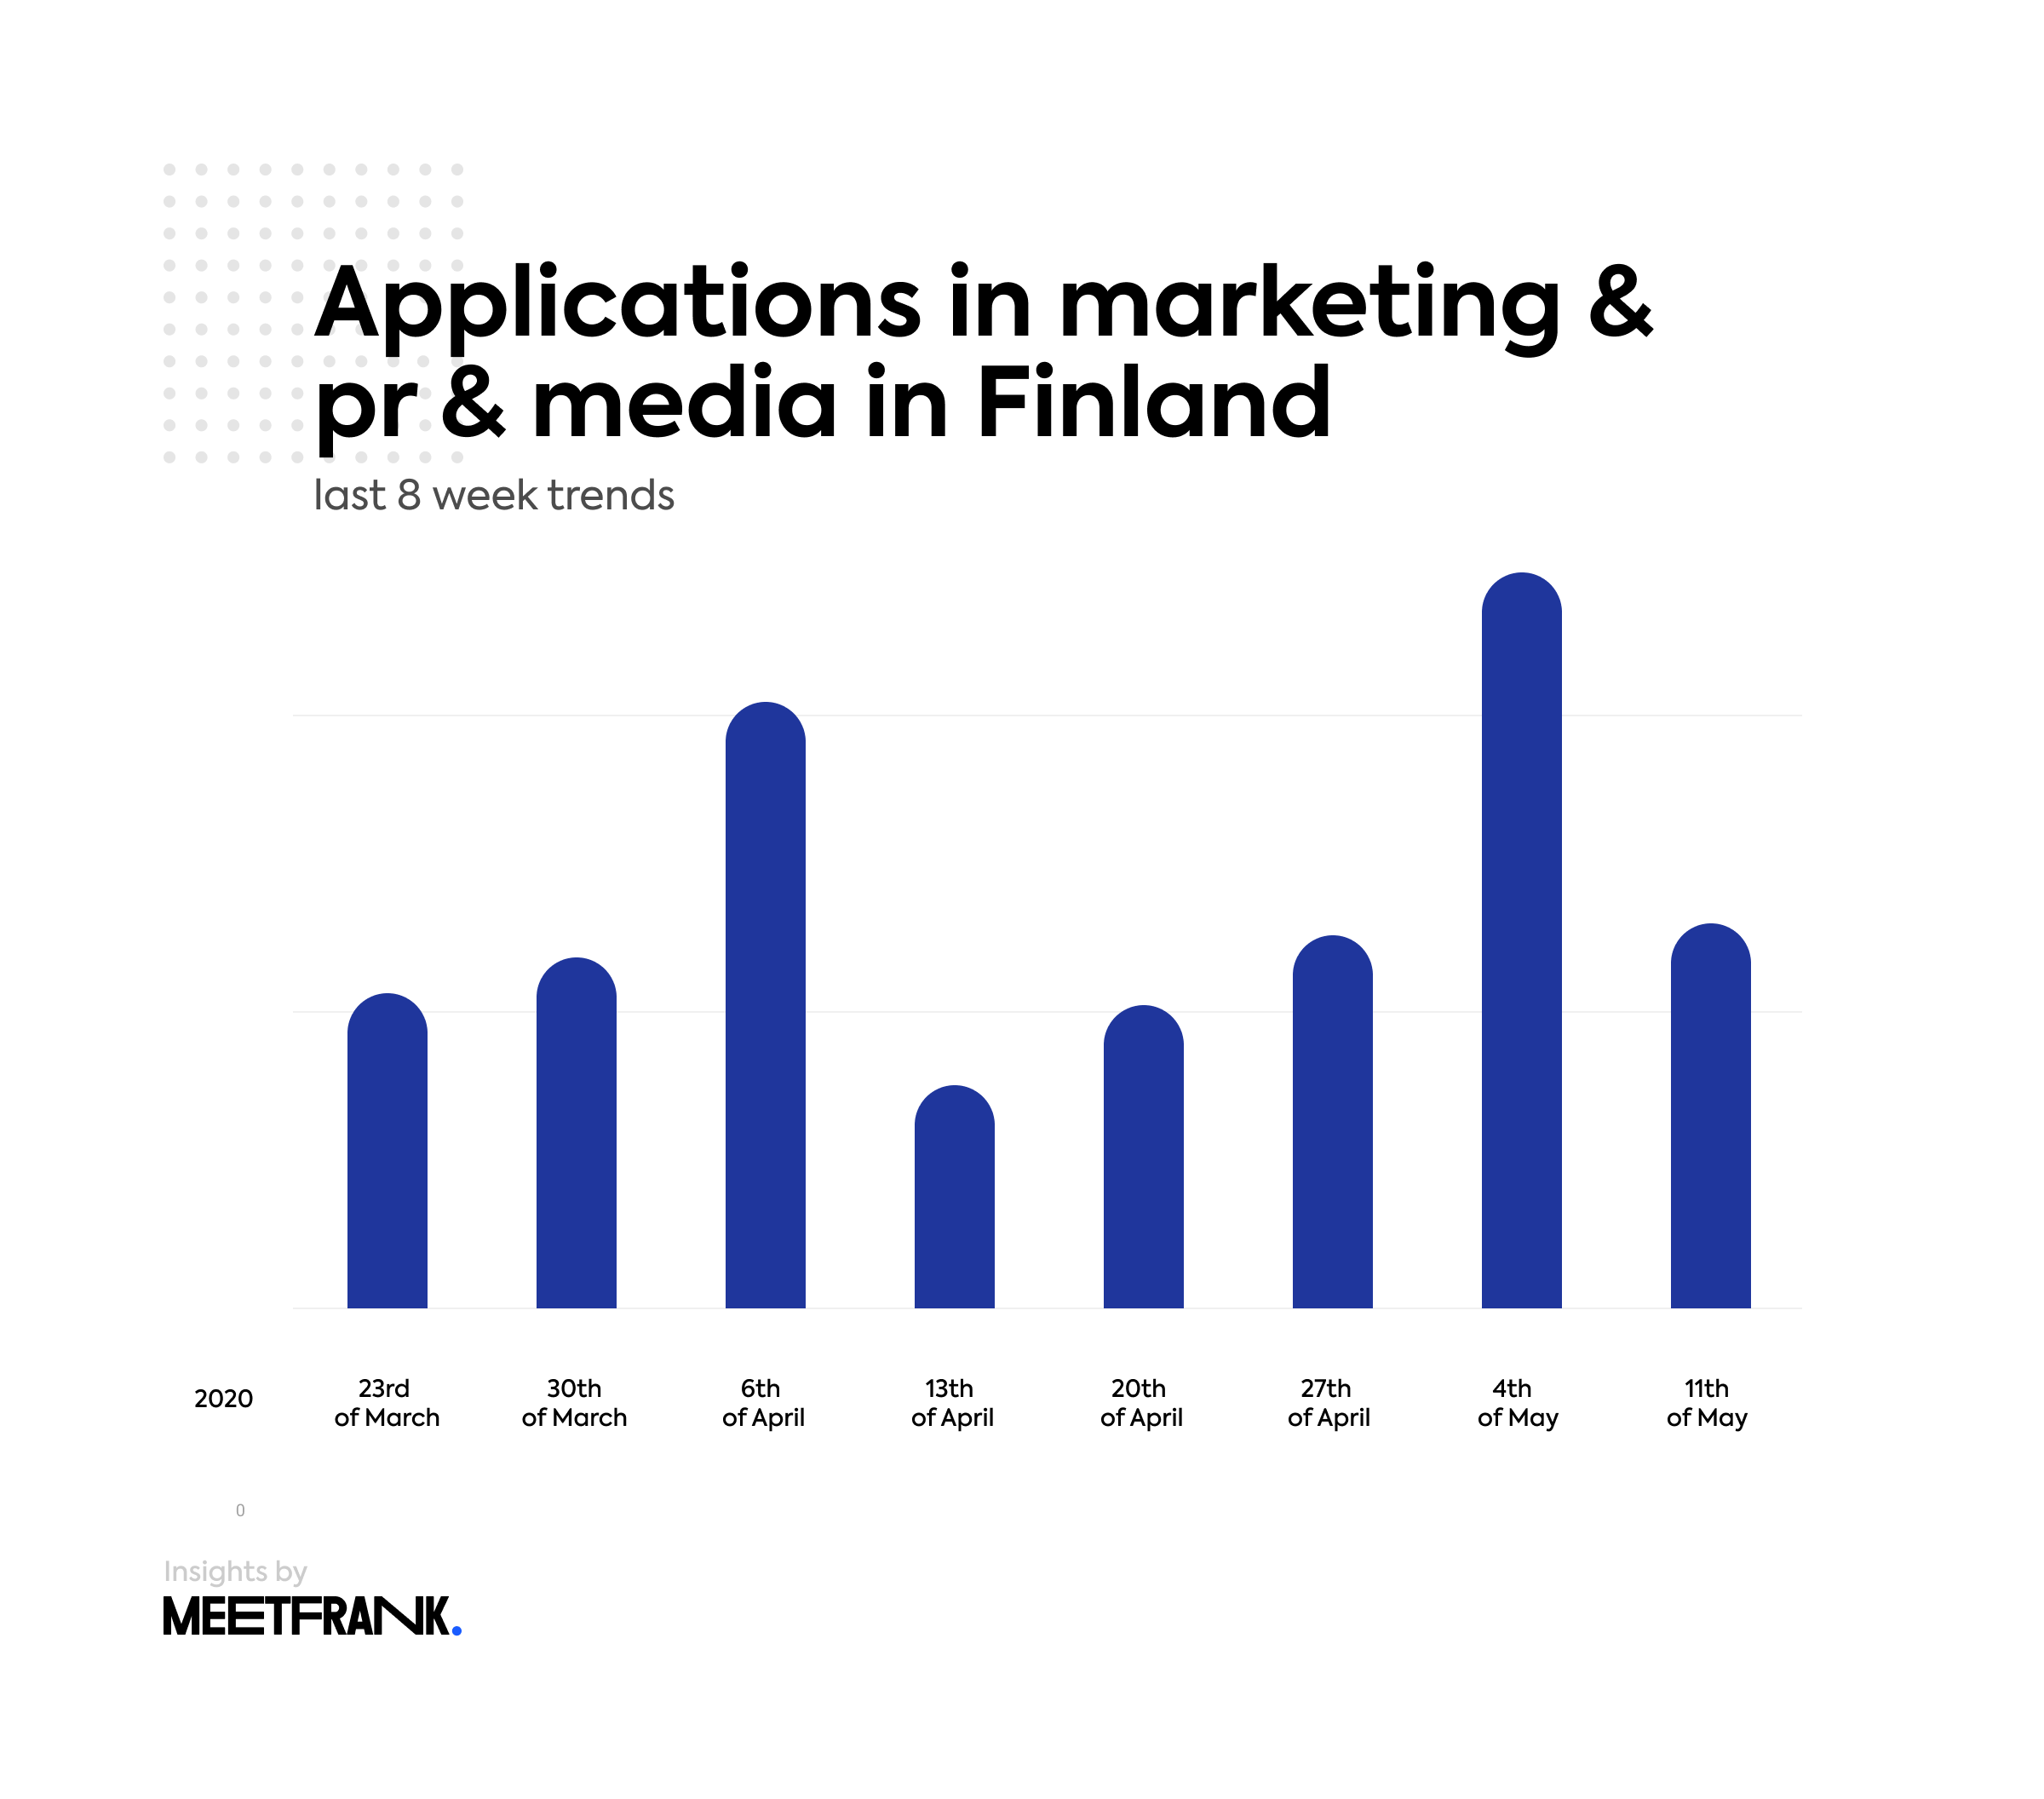 applications in marketing & pr & media in Finland